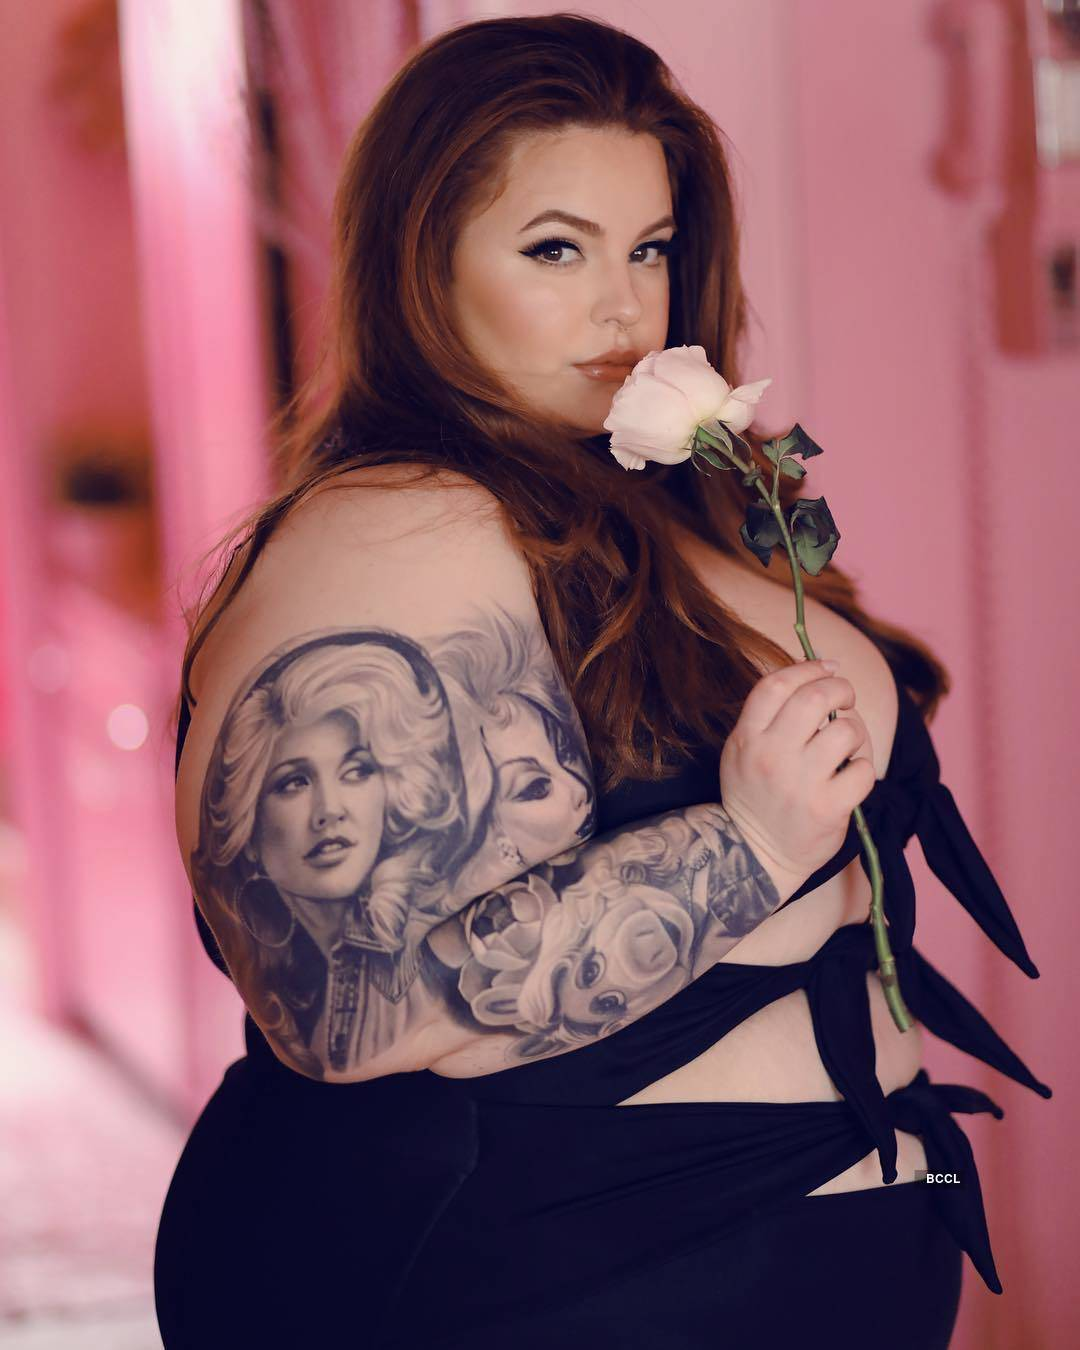 Author of 'Fat Girl' Tess Holliday changes the perception of plus size models